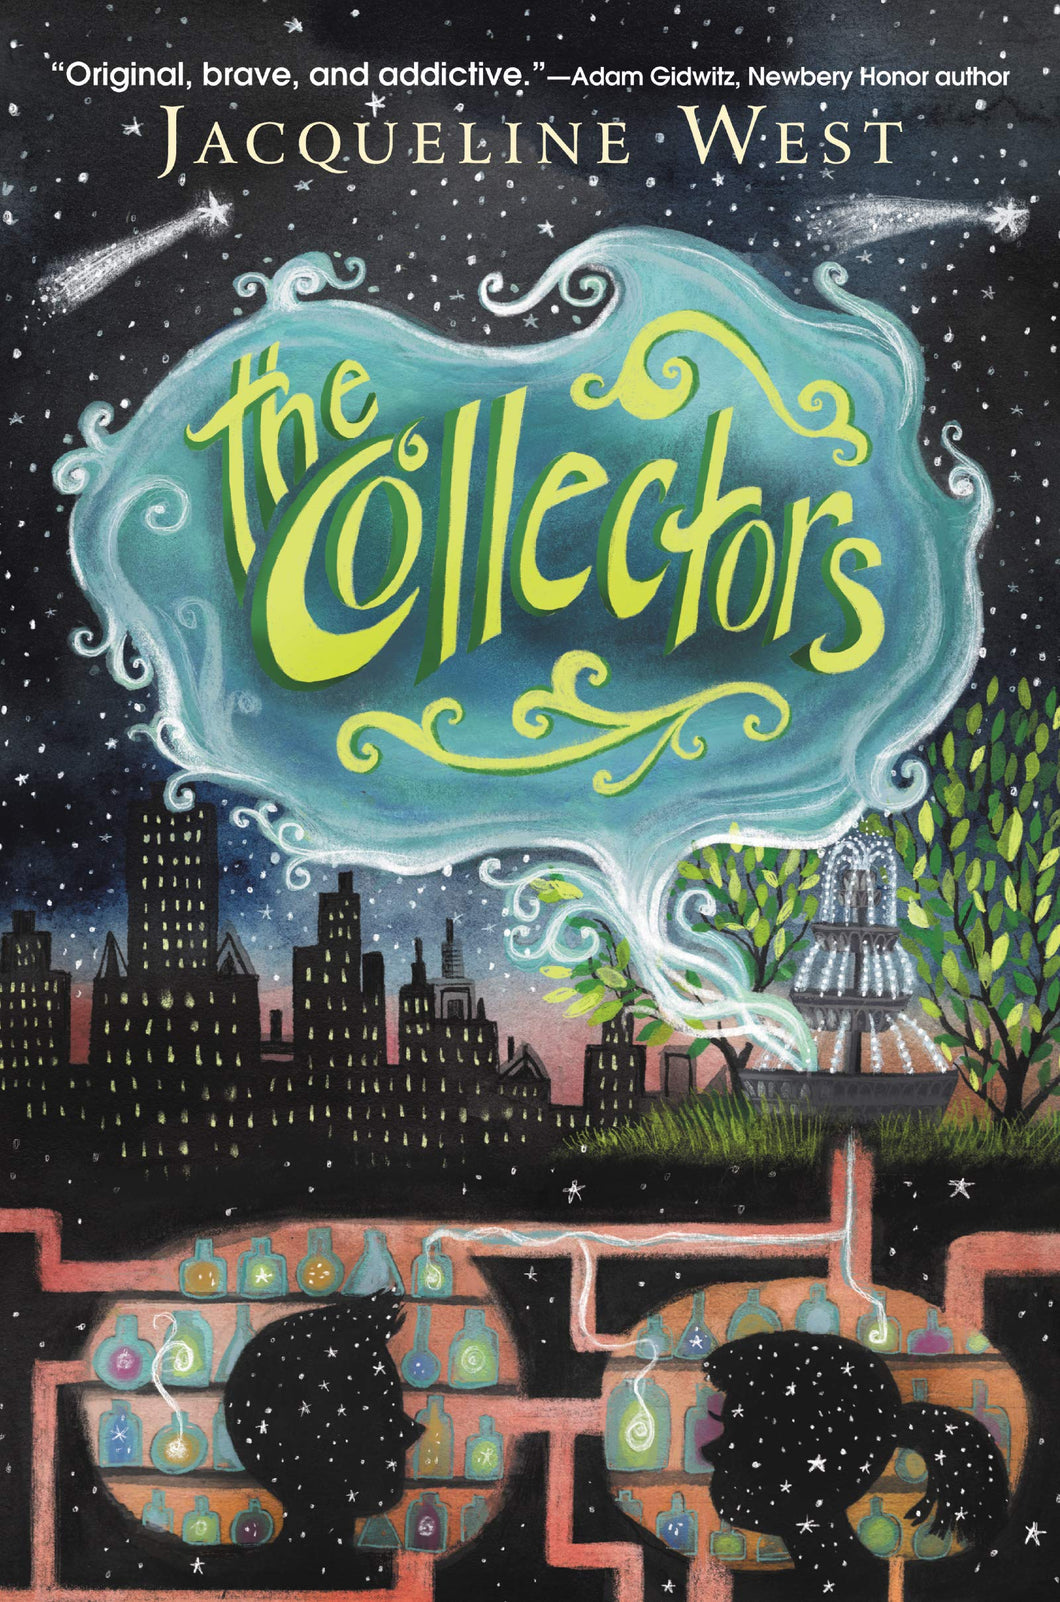 The Collectors (Book 1)